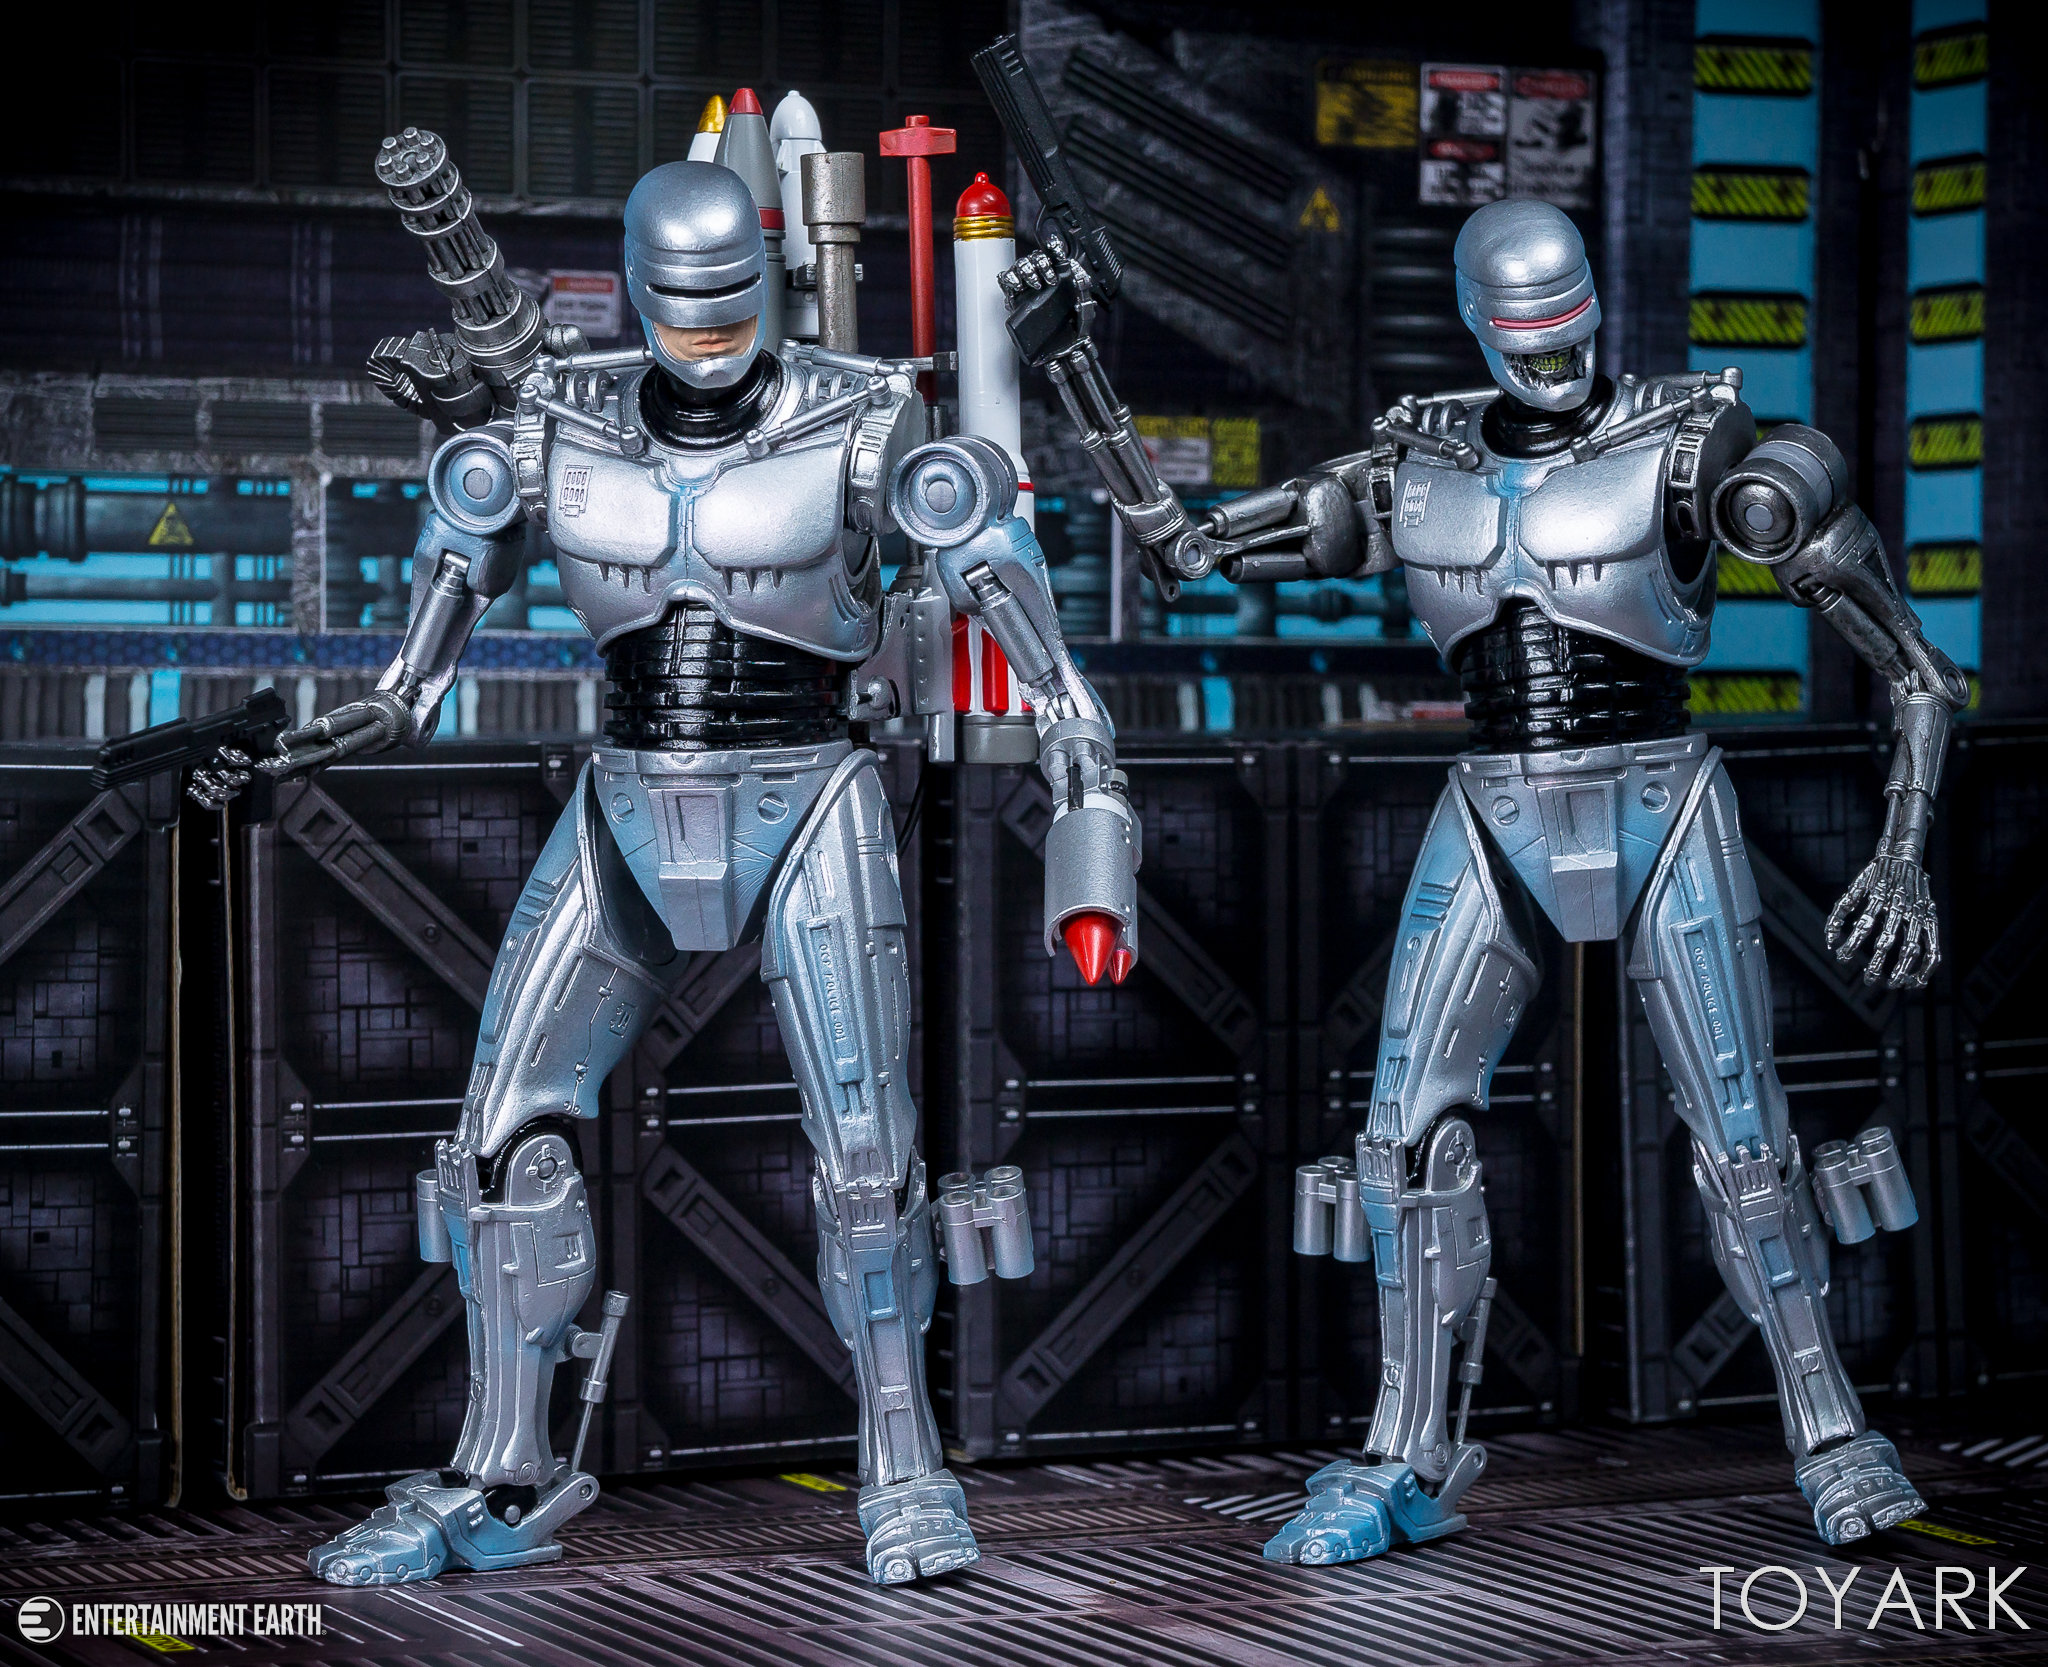 http://news.toyark.com/wp-content/uploads/sites/4/2018/02/NECA-Ult-Future-Robocop-020.jpg